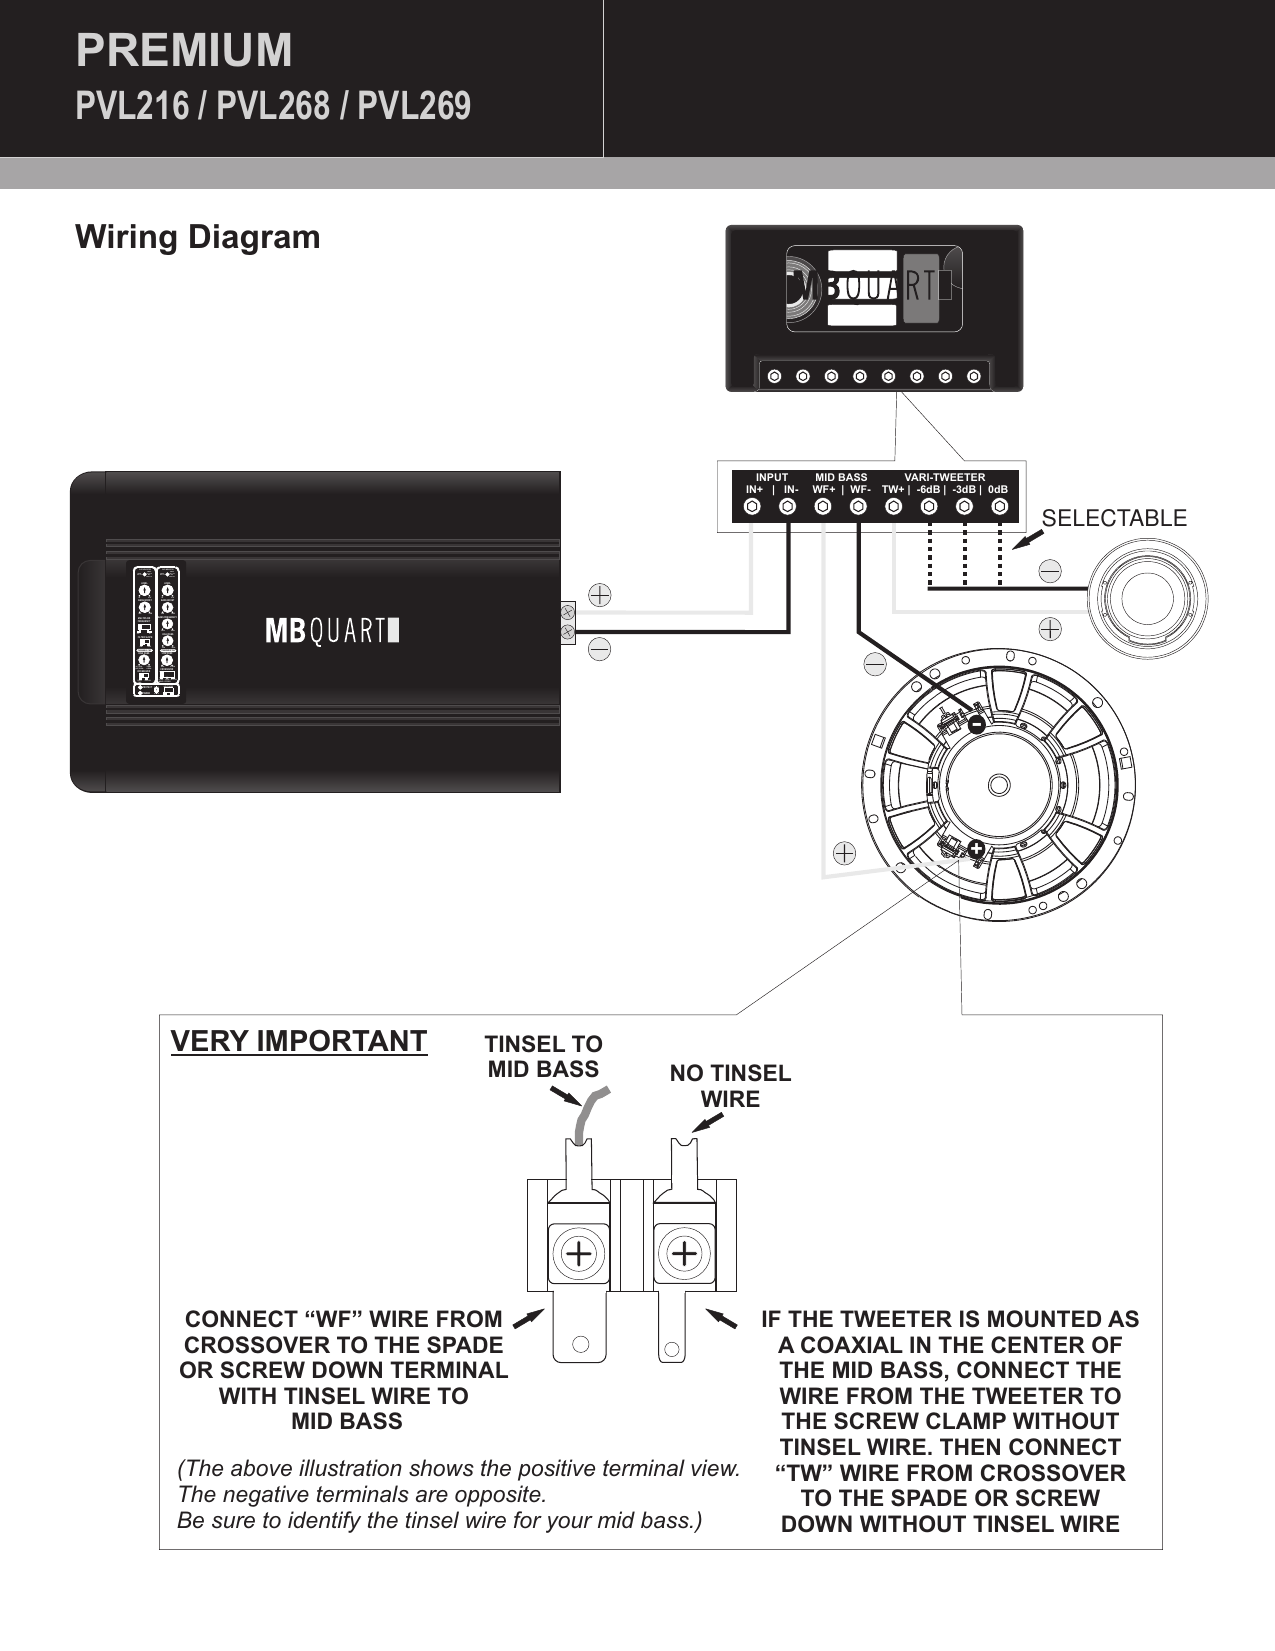 Mb Quart Crossover Wiring Diagram from usermanual.wiki